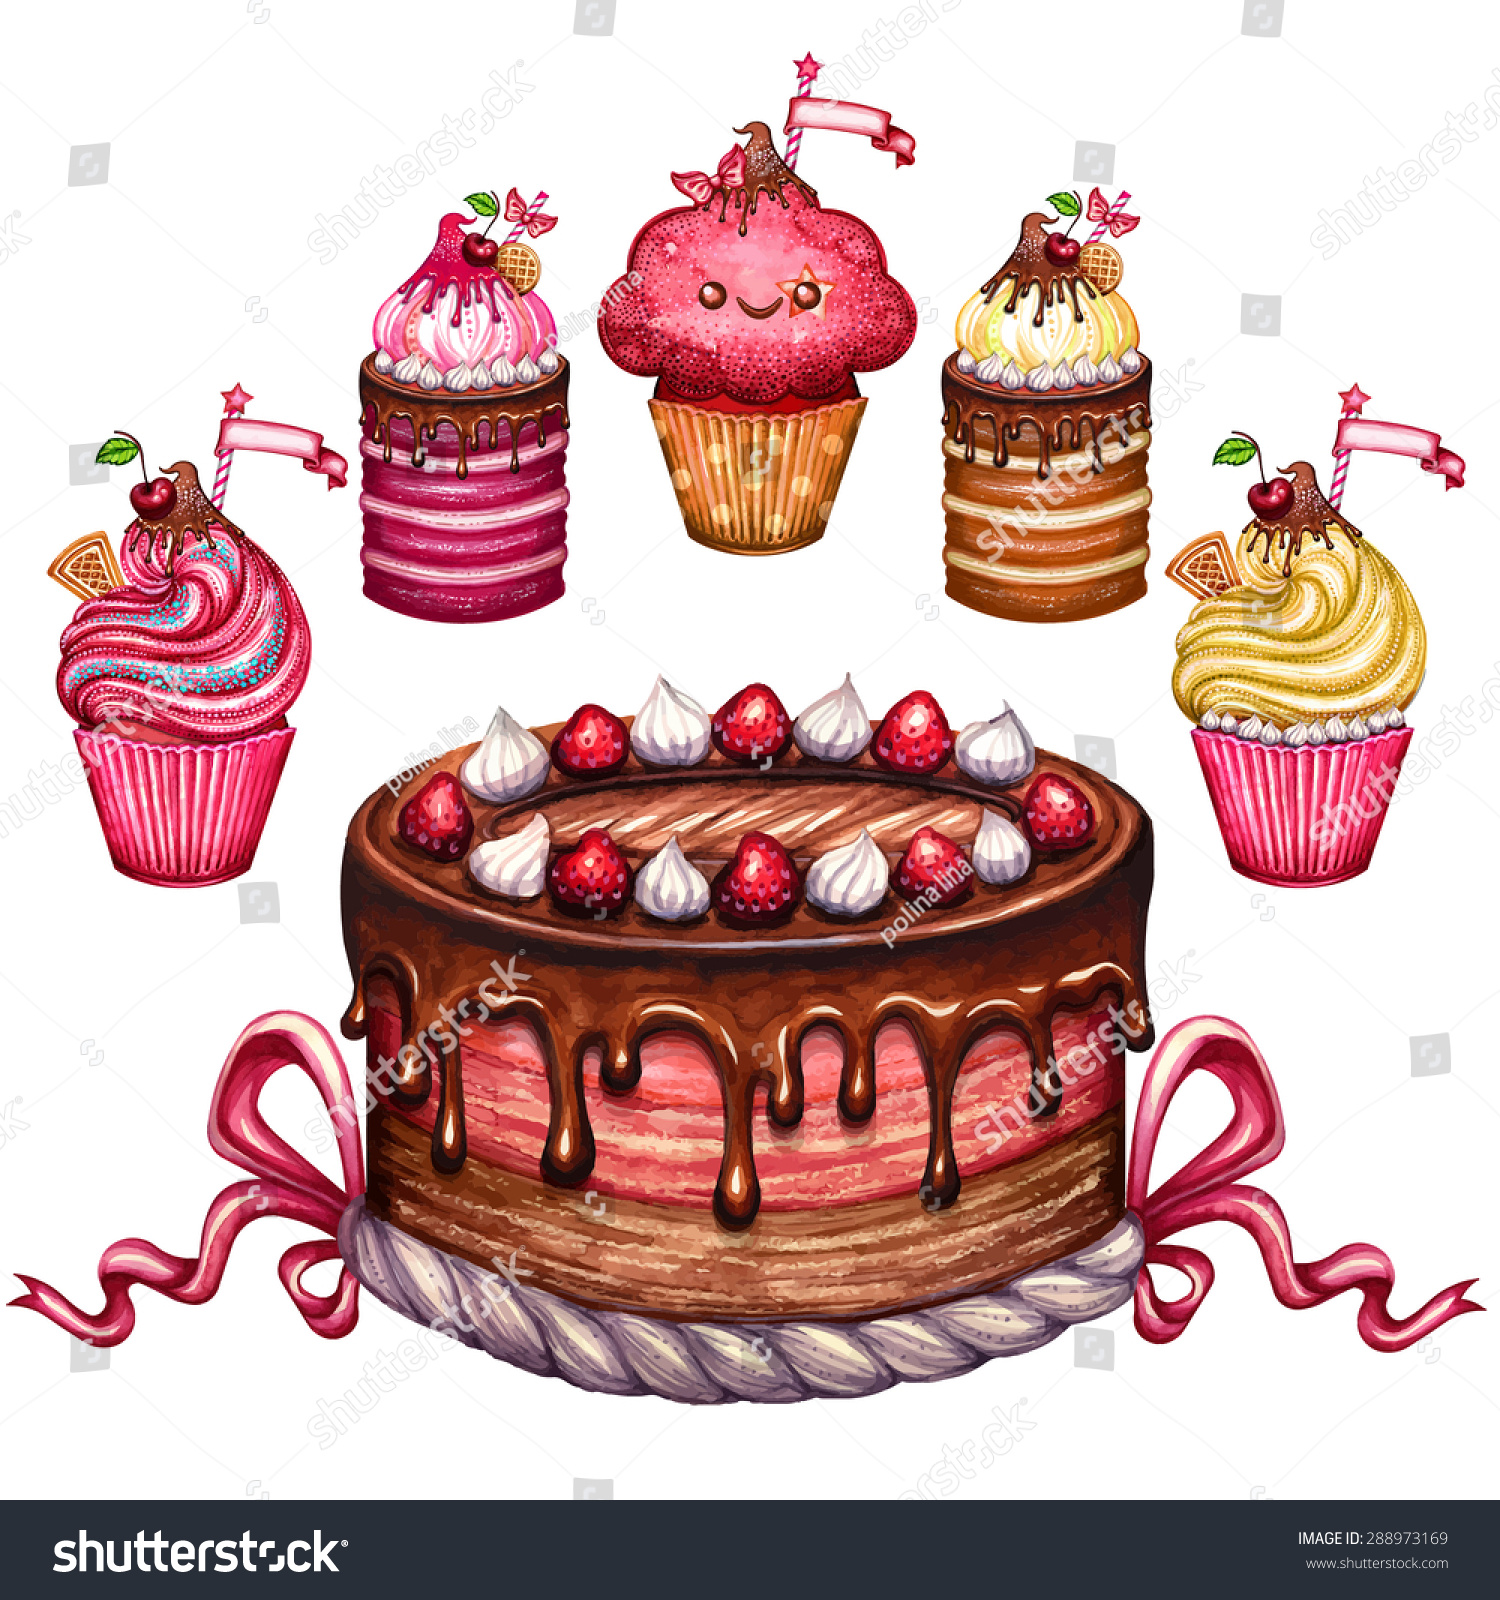 Vintage Cake Collectionvectorized Watercolor Drawingposter ...